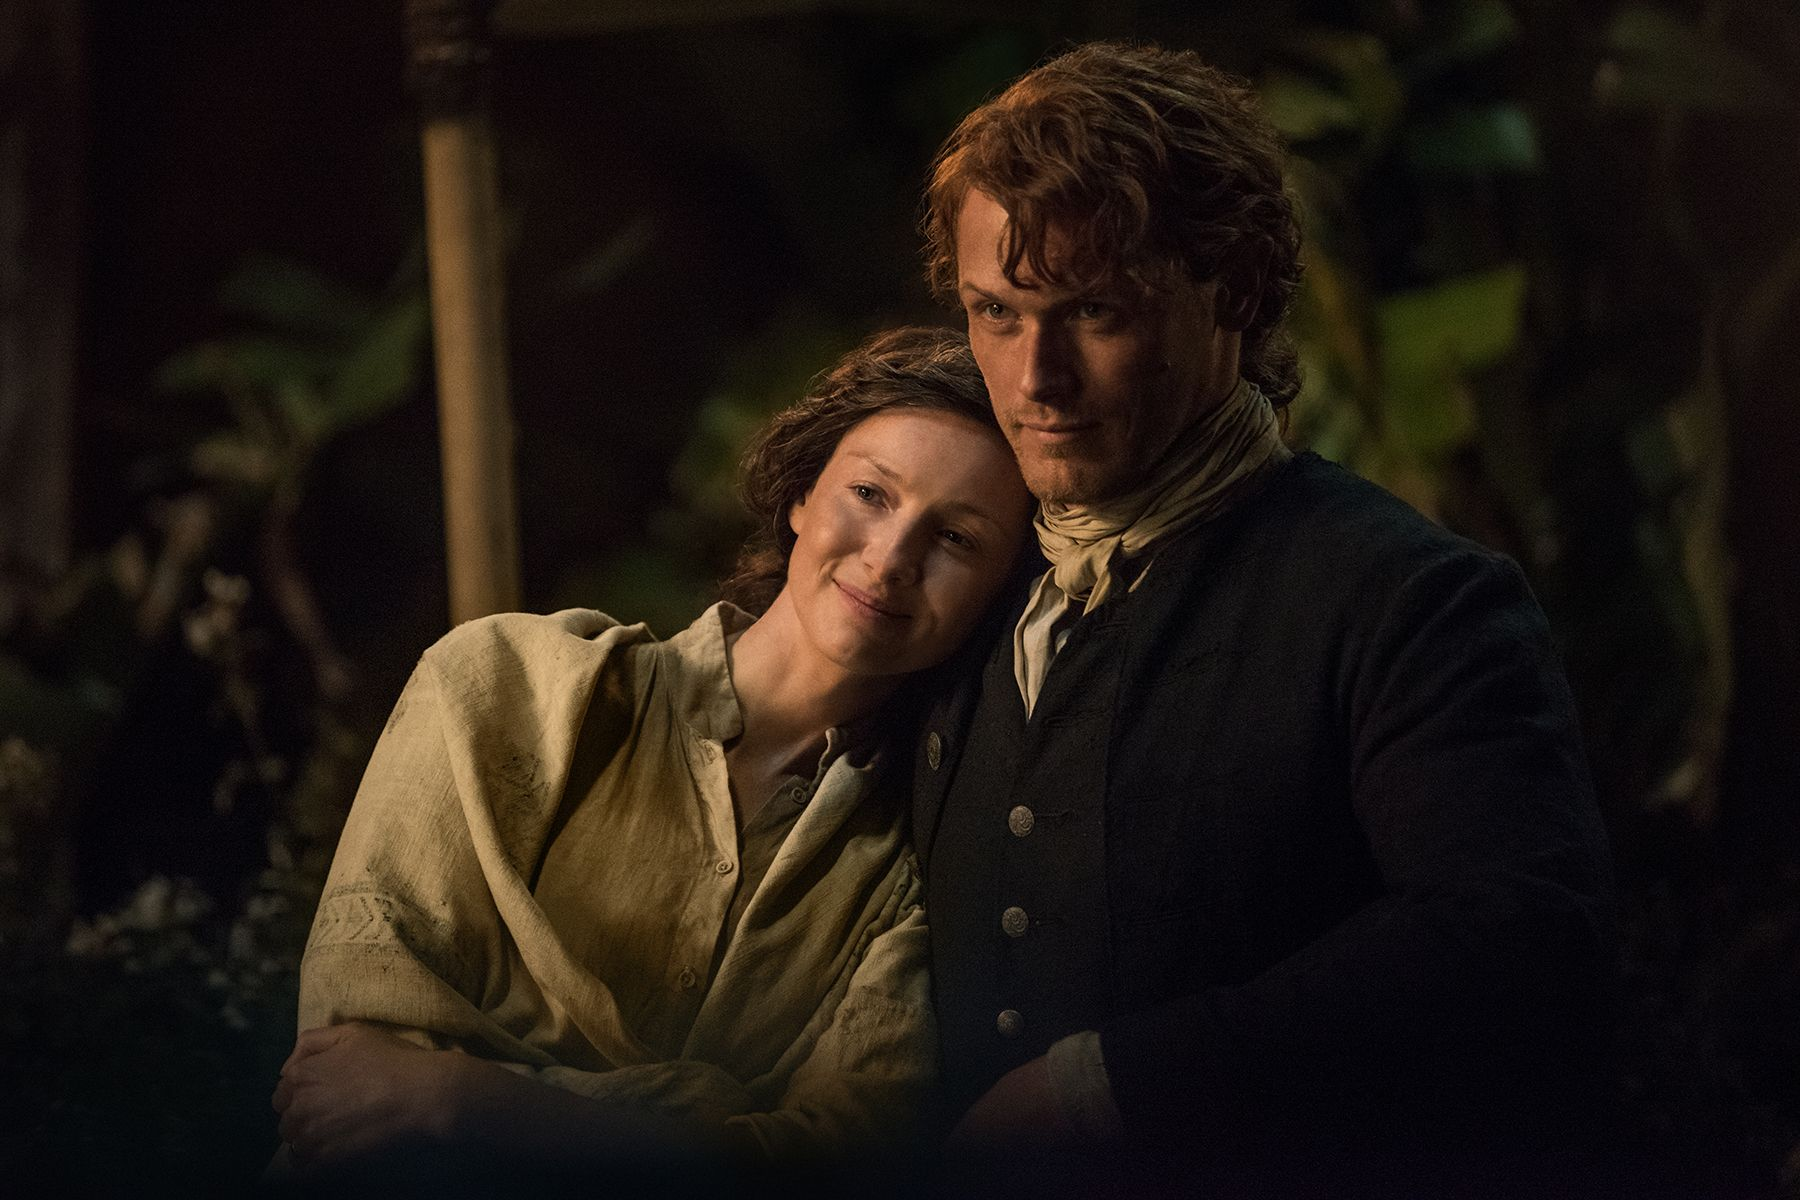 'Outlander' Renewed For Seasons 5 & 6 At Starz